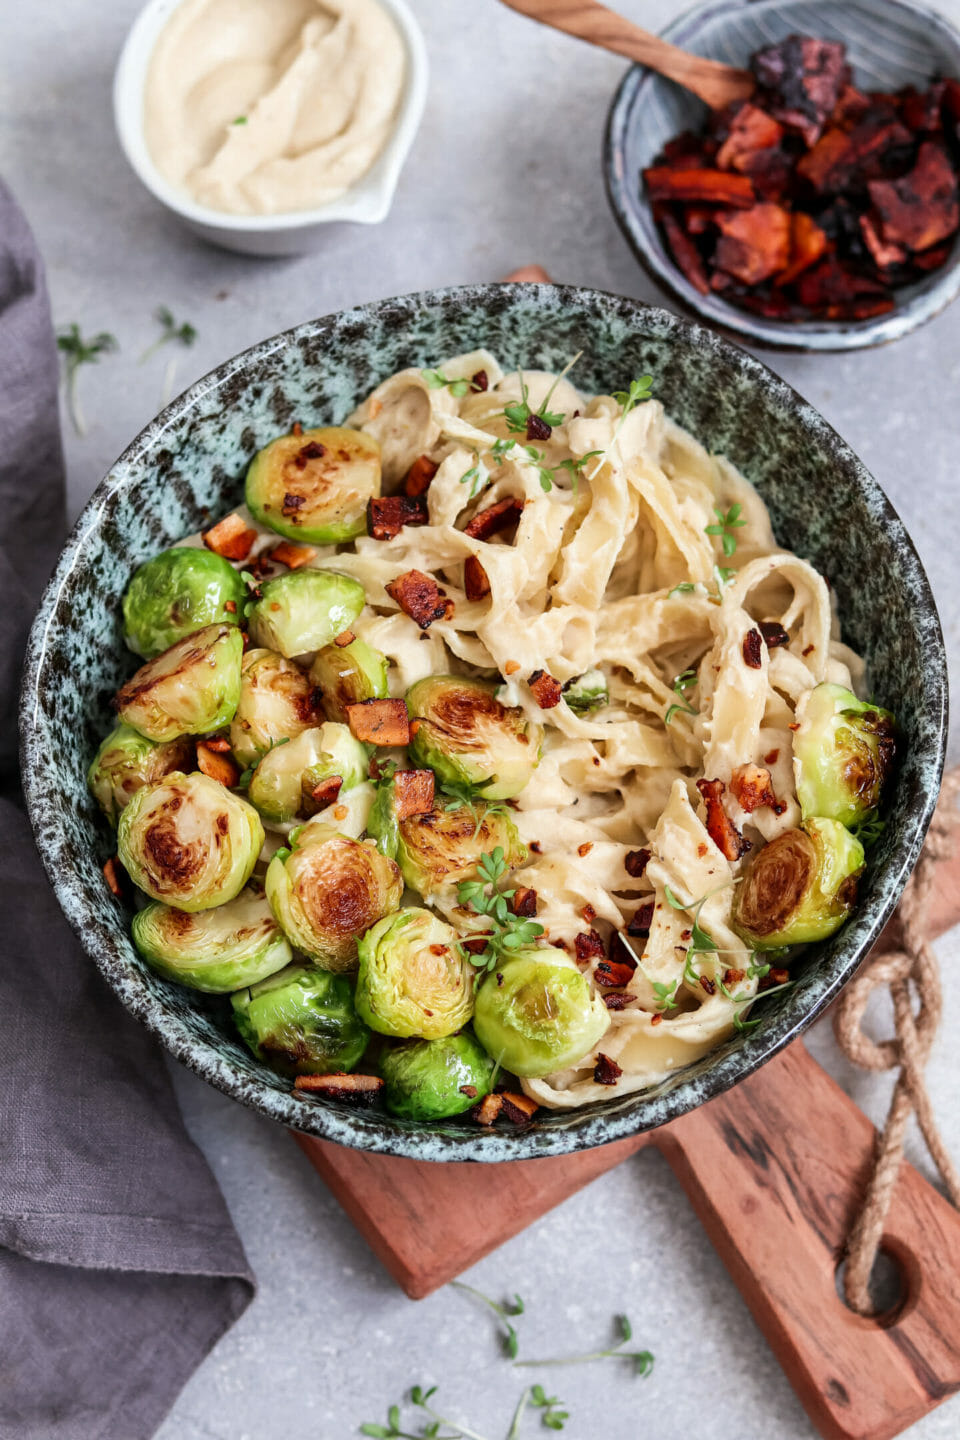 Vegan Fettuccine Alfredo made from cauliflower with brussel sprouts and bacon made from coconut chips.